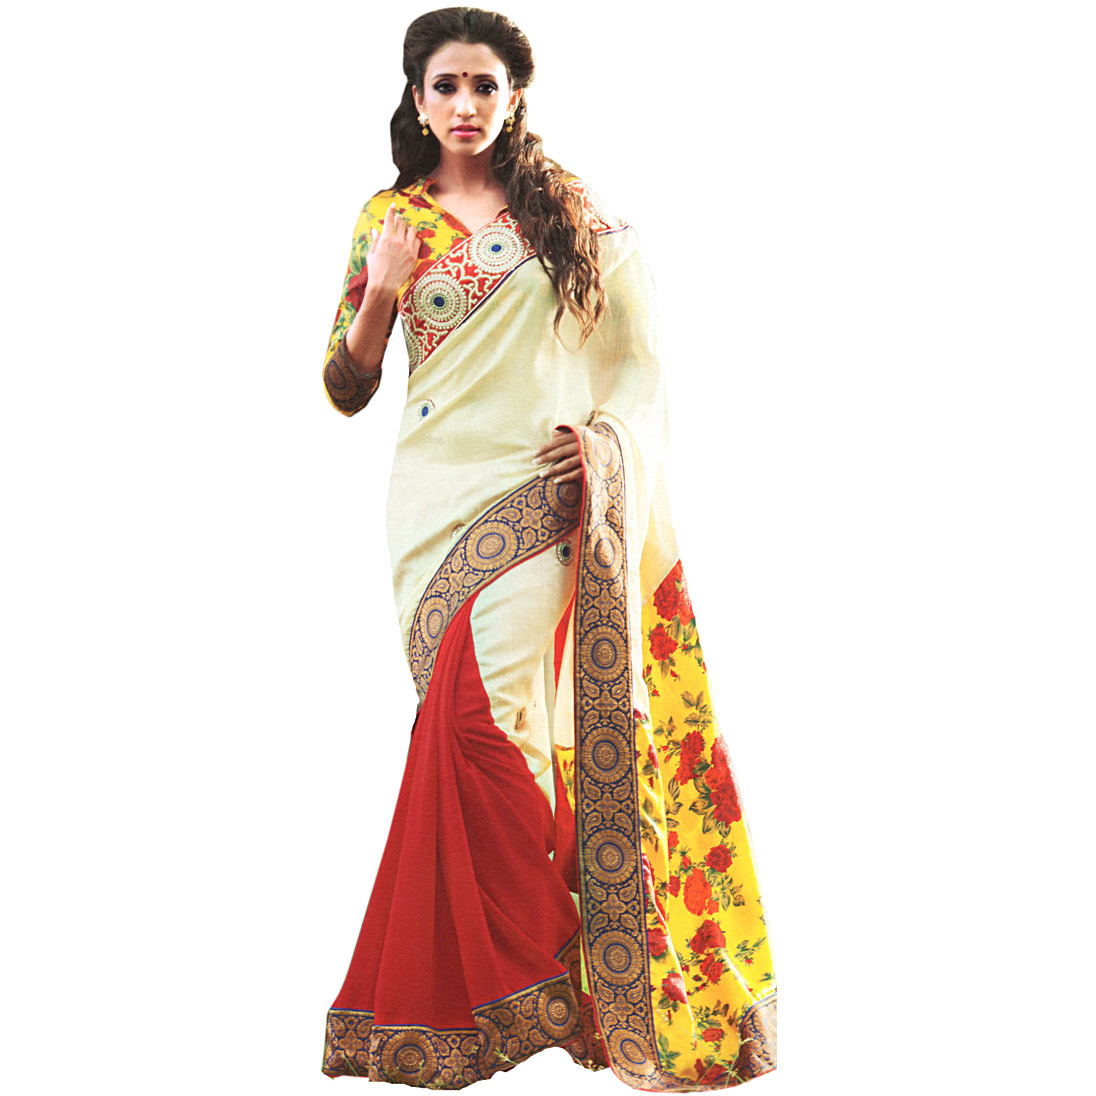 Tri Color Designer Sari with Patch Border and Floral Printed Anchal